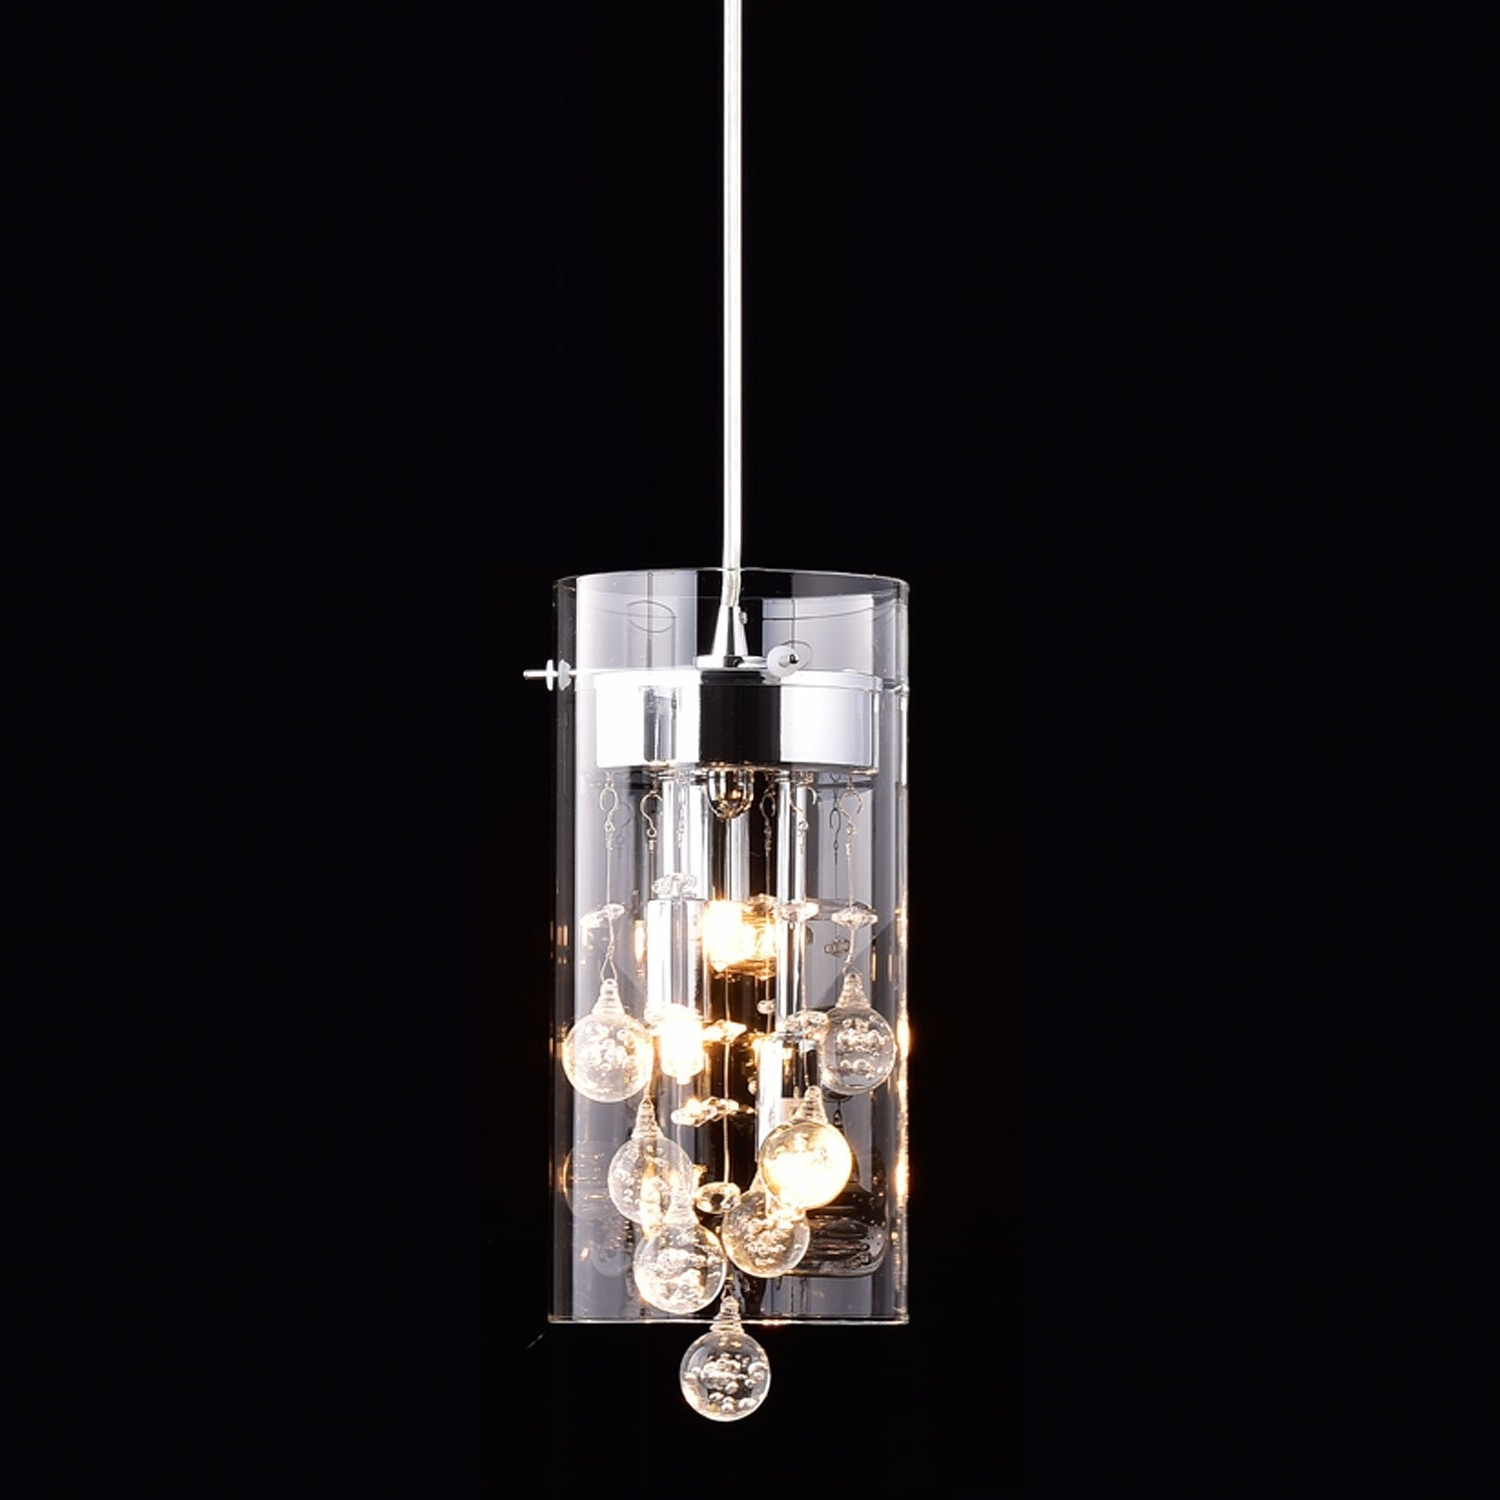 Modern Chandelier Lighting With Regard To Well Known Claxy Ecopower Lighting Glass & Crystal Pendant Lighting Modern (View 14 of 15)